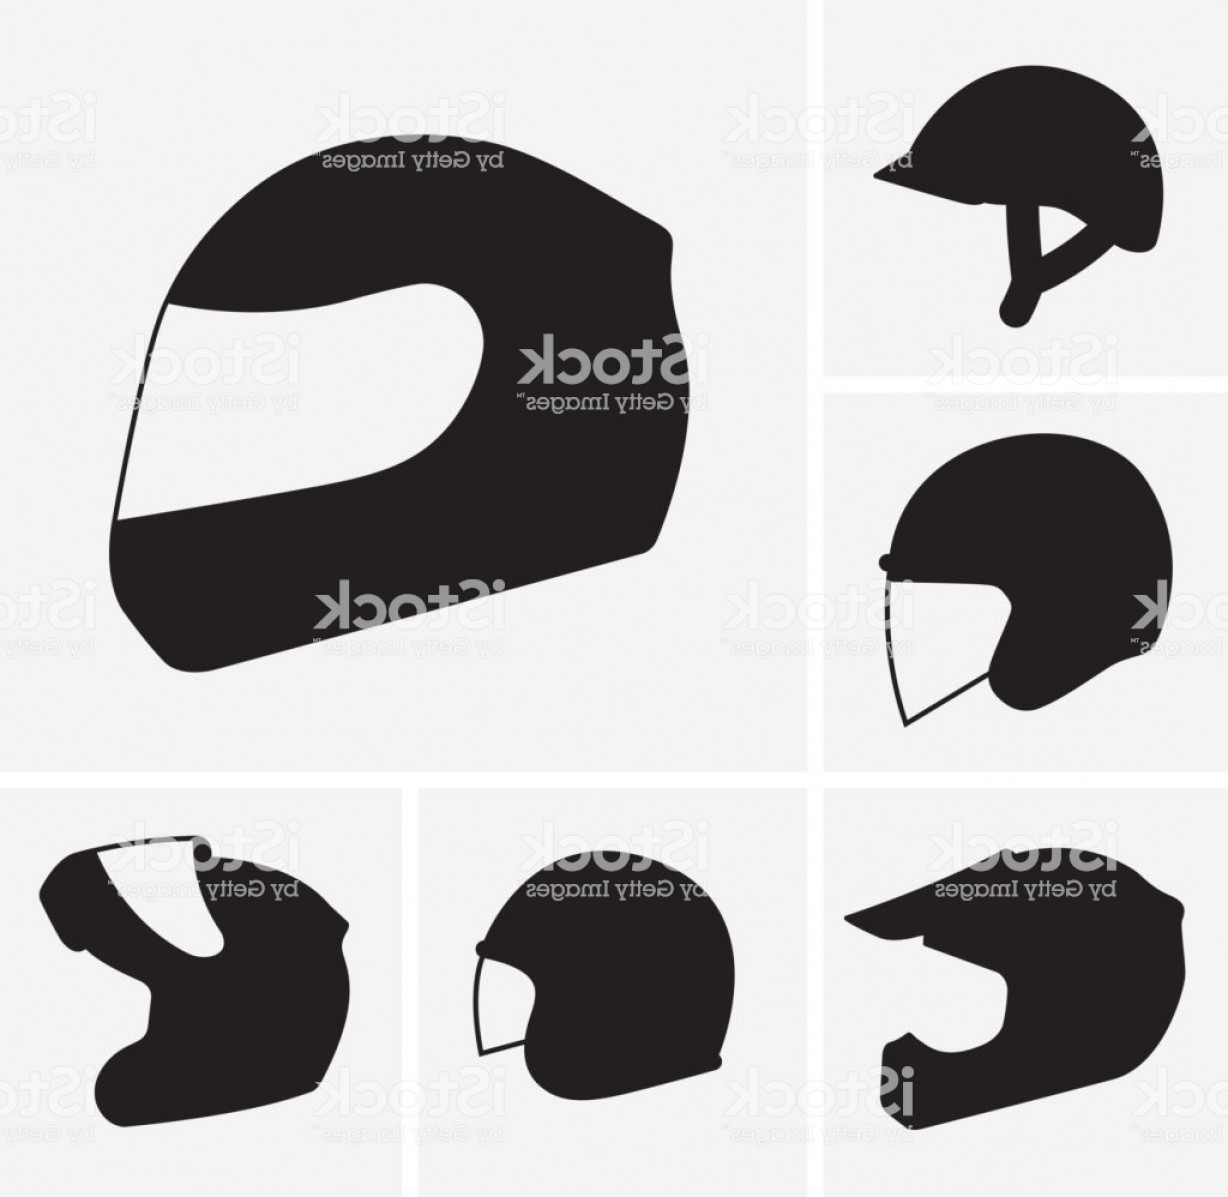 Motorcycle Helmet Vector Art: Motorcycle Helmets Vector Silhouette Gm